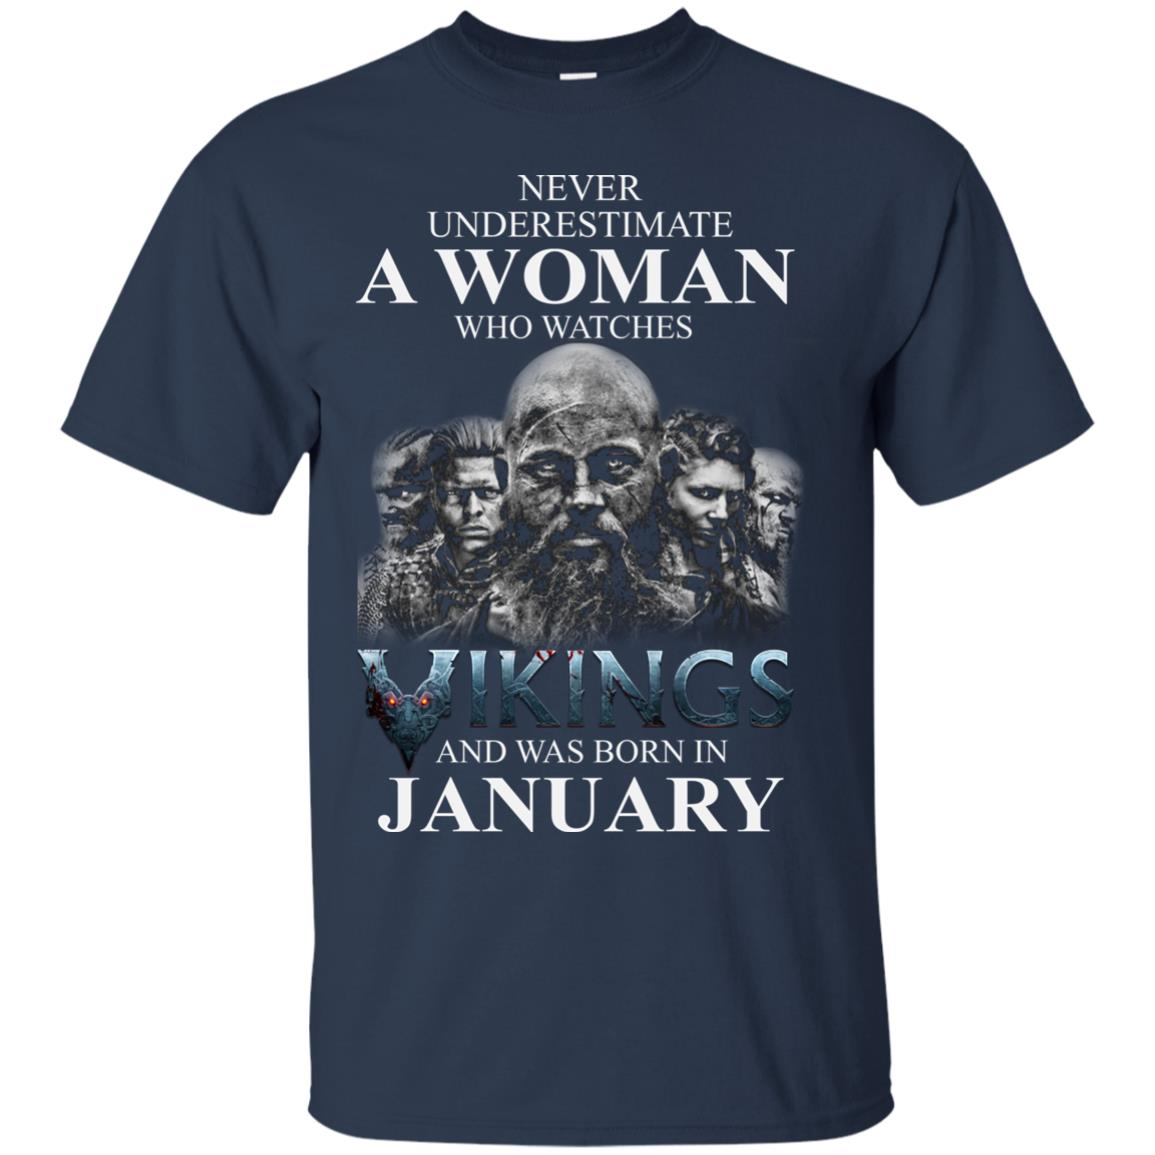 image 1352 - Never Underestimate A woman who watches Vikings and was born in January shirt